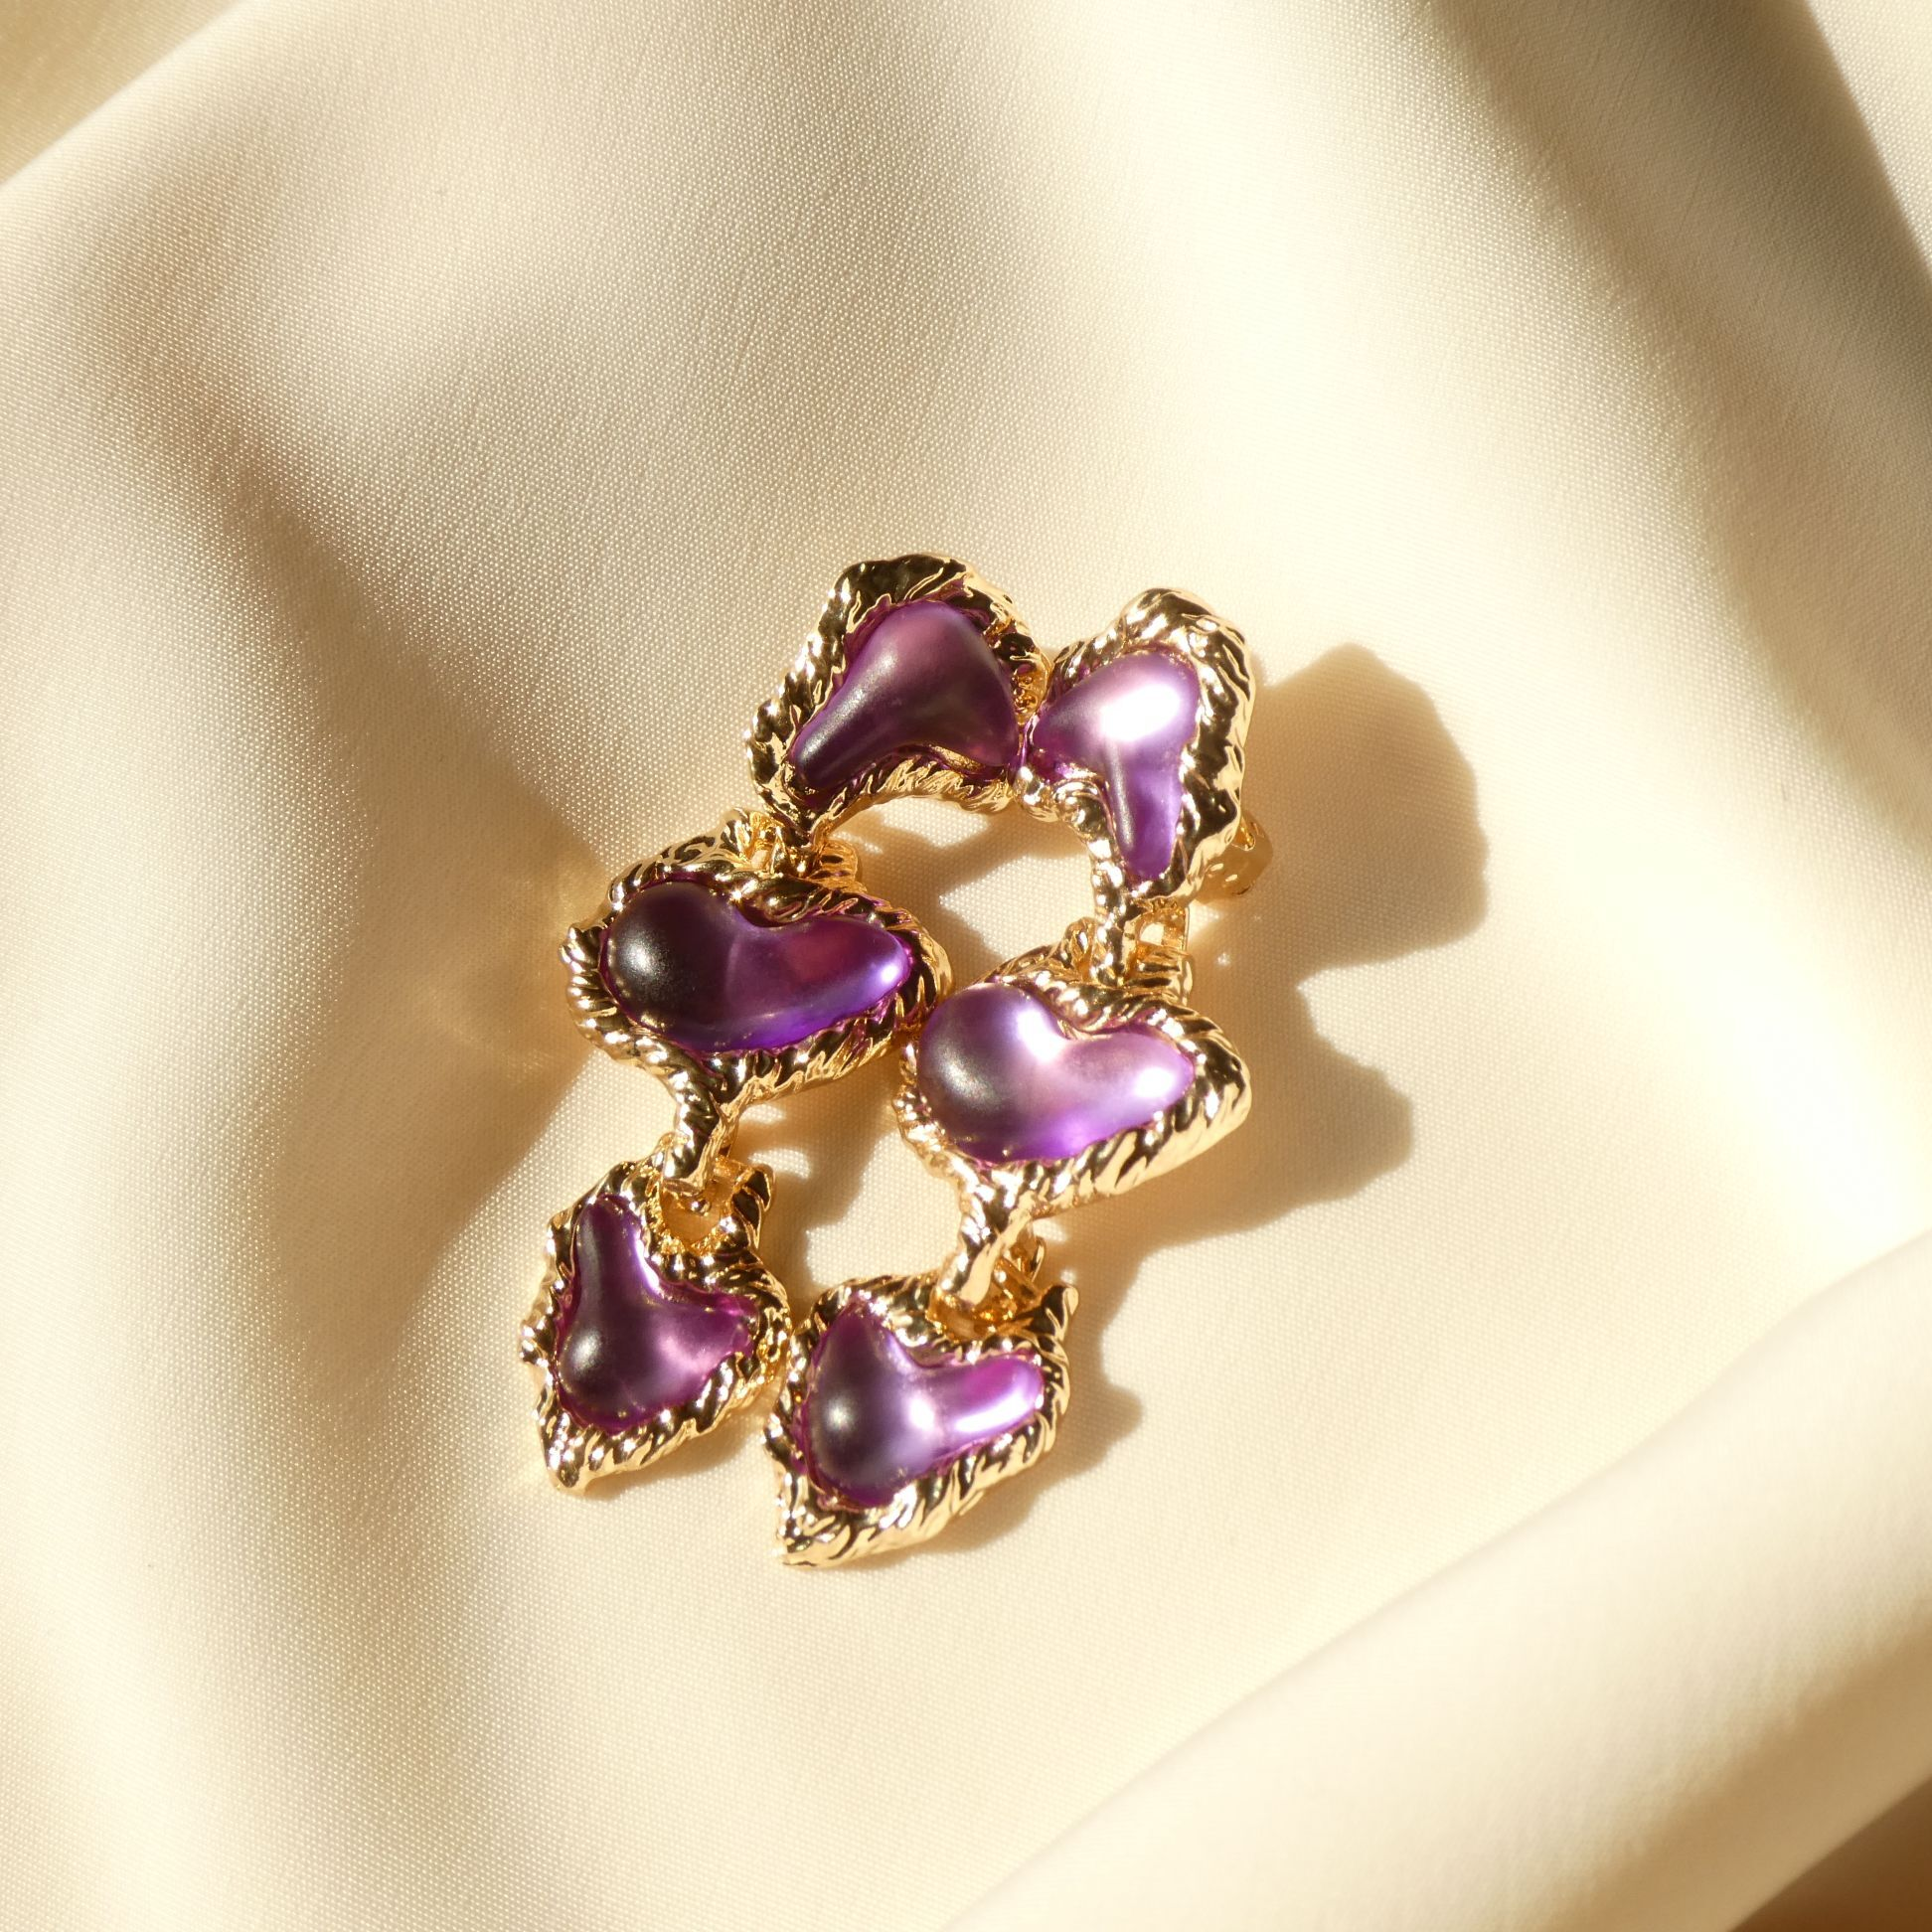 80s Vintage Stock: The Lucienne Earring 〜光を添える〜